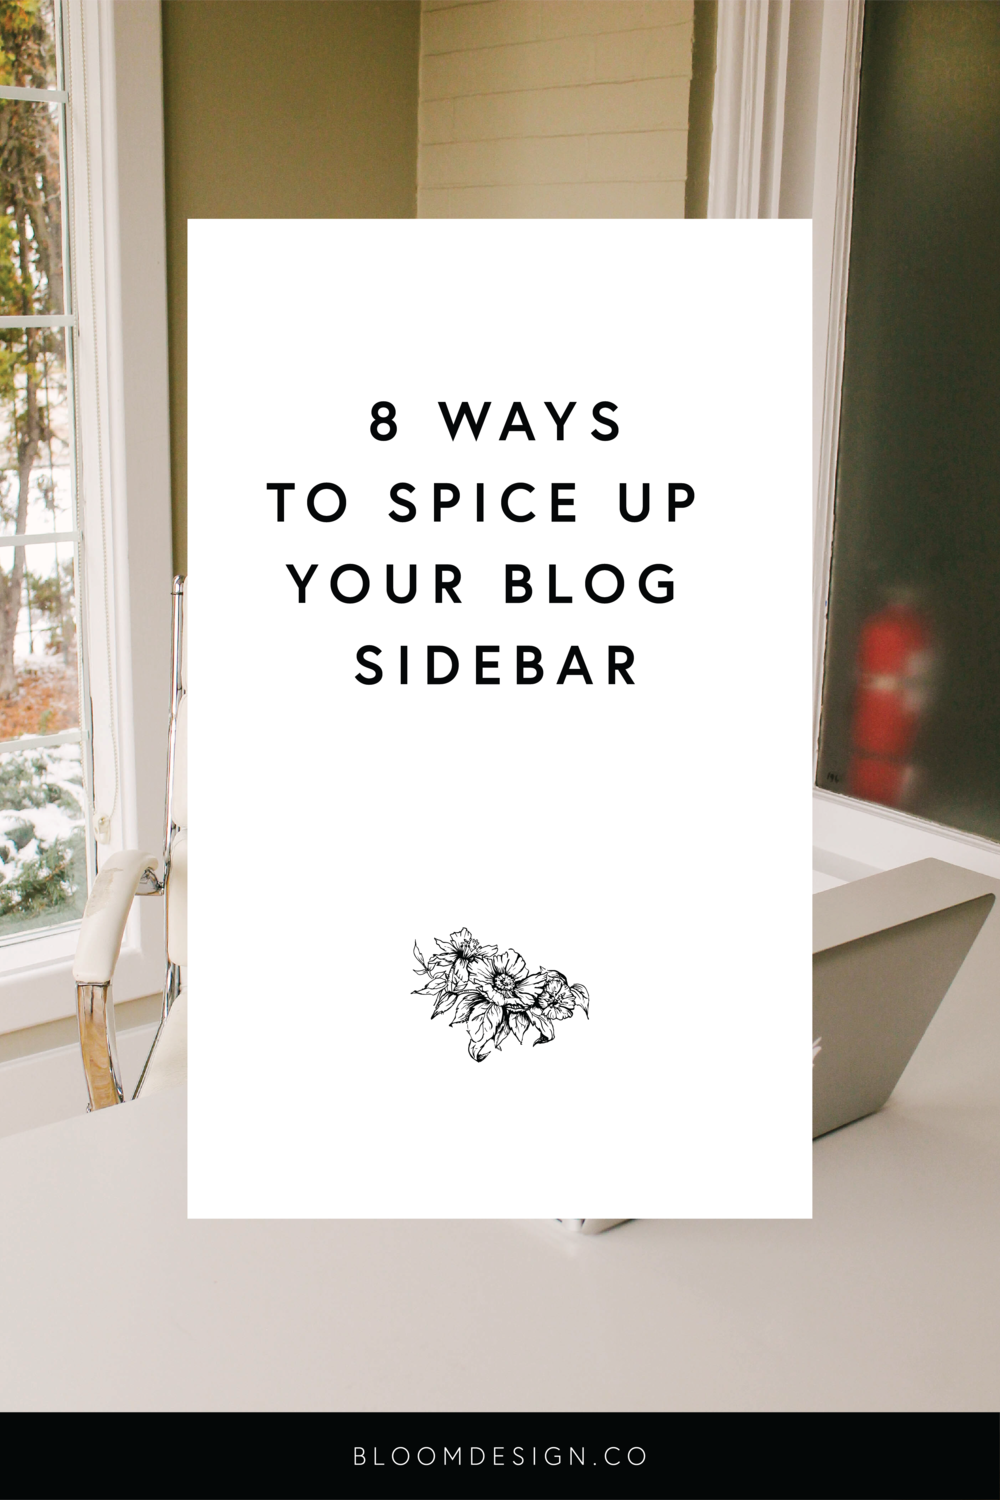 Eight Ways to Spice Up Your Blog Sidebar | Getting new traffic to your website is great, but how can you hold their interest and keep them there for longer? Including links in your blog sidebar and further suggested reading will help users stay engaged and on your website. #blogsidebar #squarespacetips #websitedesign #blogging #onlinemarketing